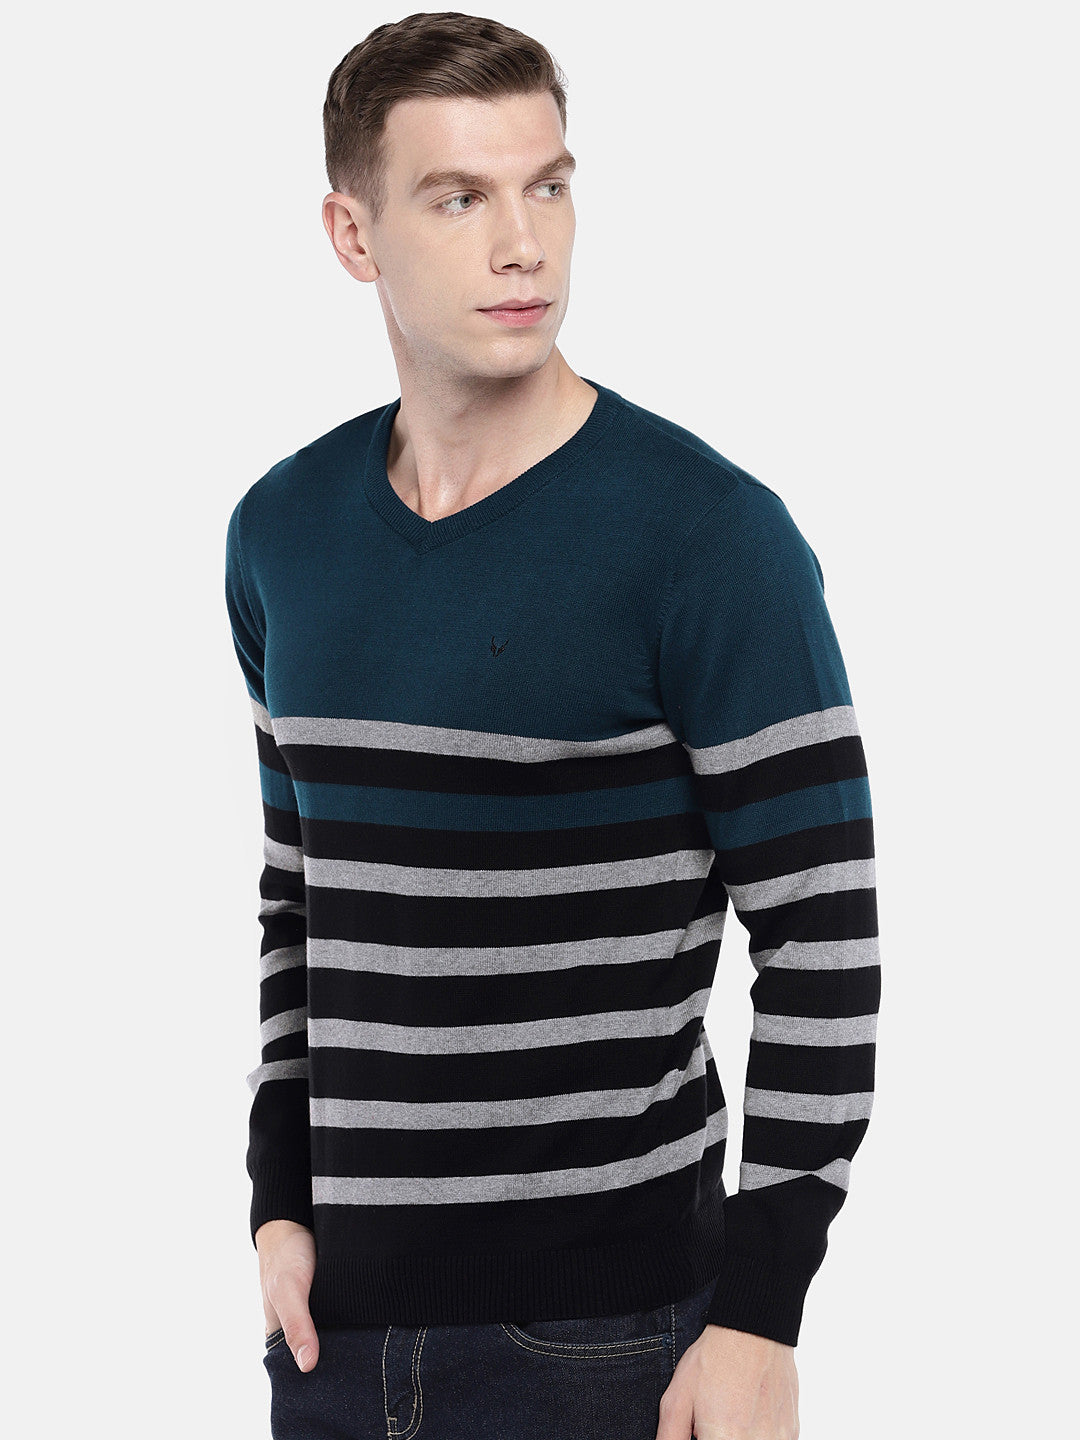 Green & Black Striped Sweater-2